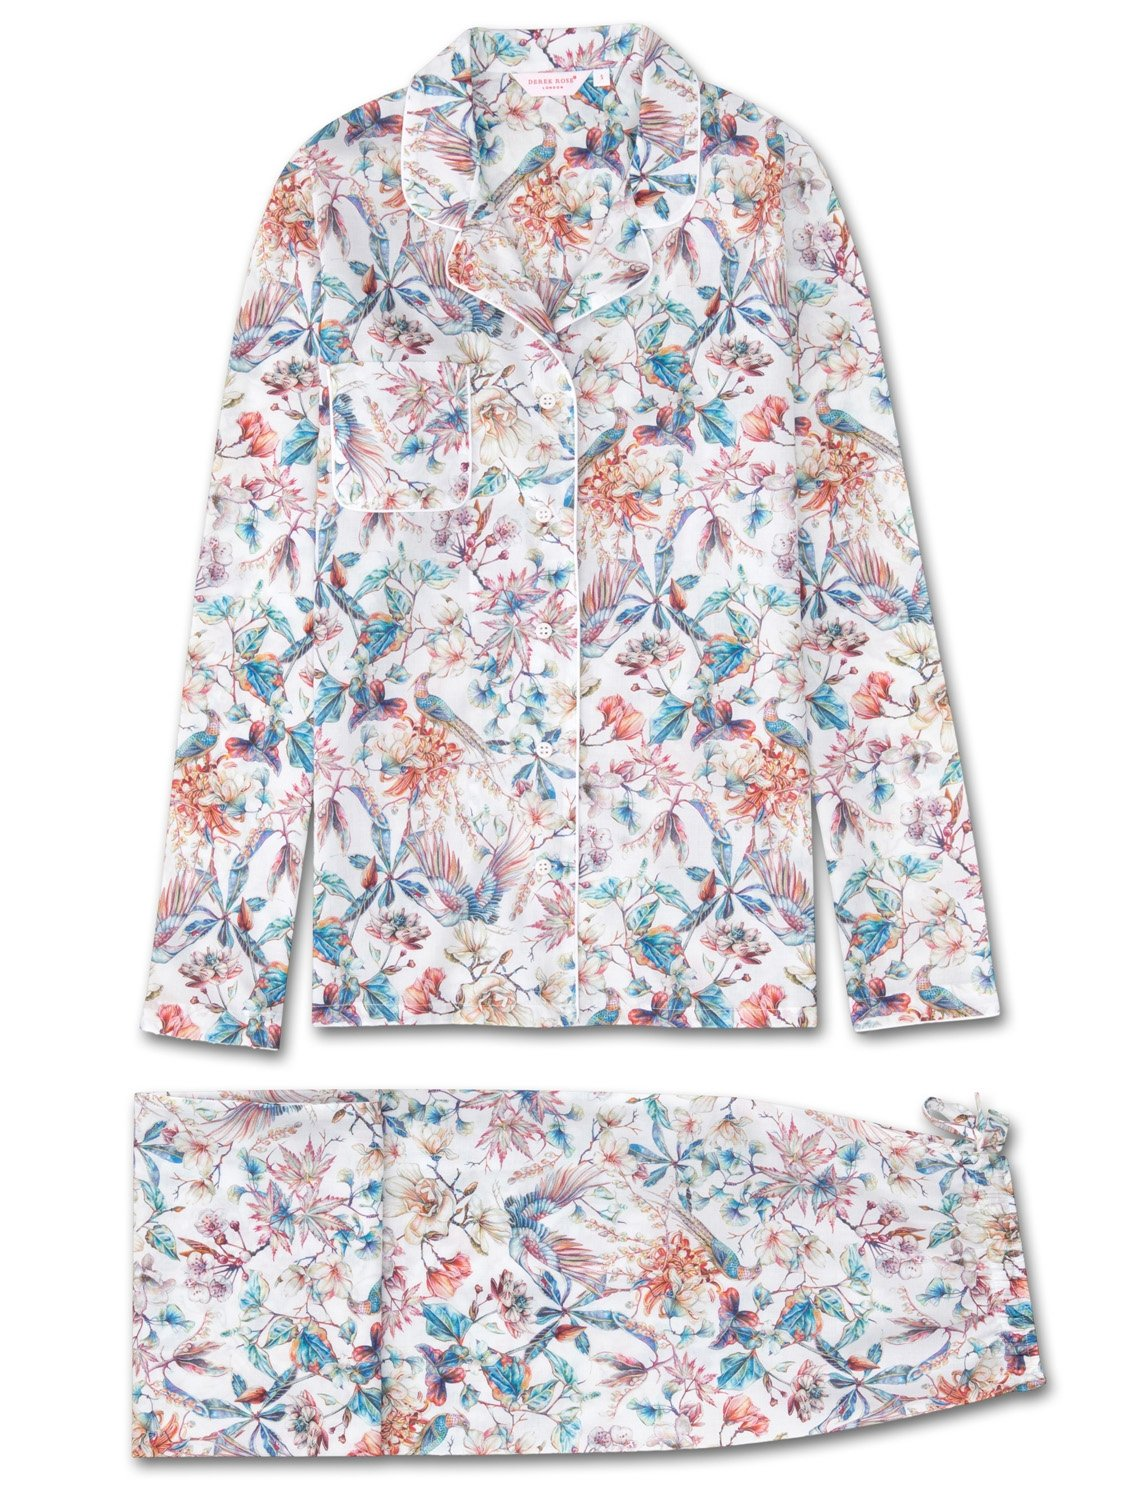 Women's Pyjamas Ledbury 14 Cotton Batiste Multi